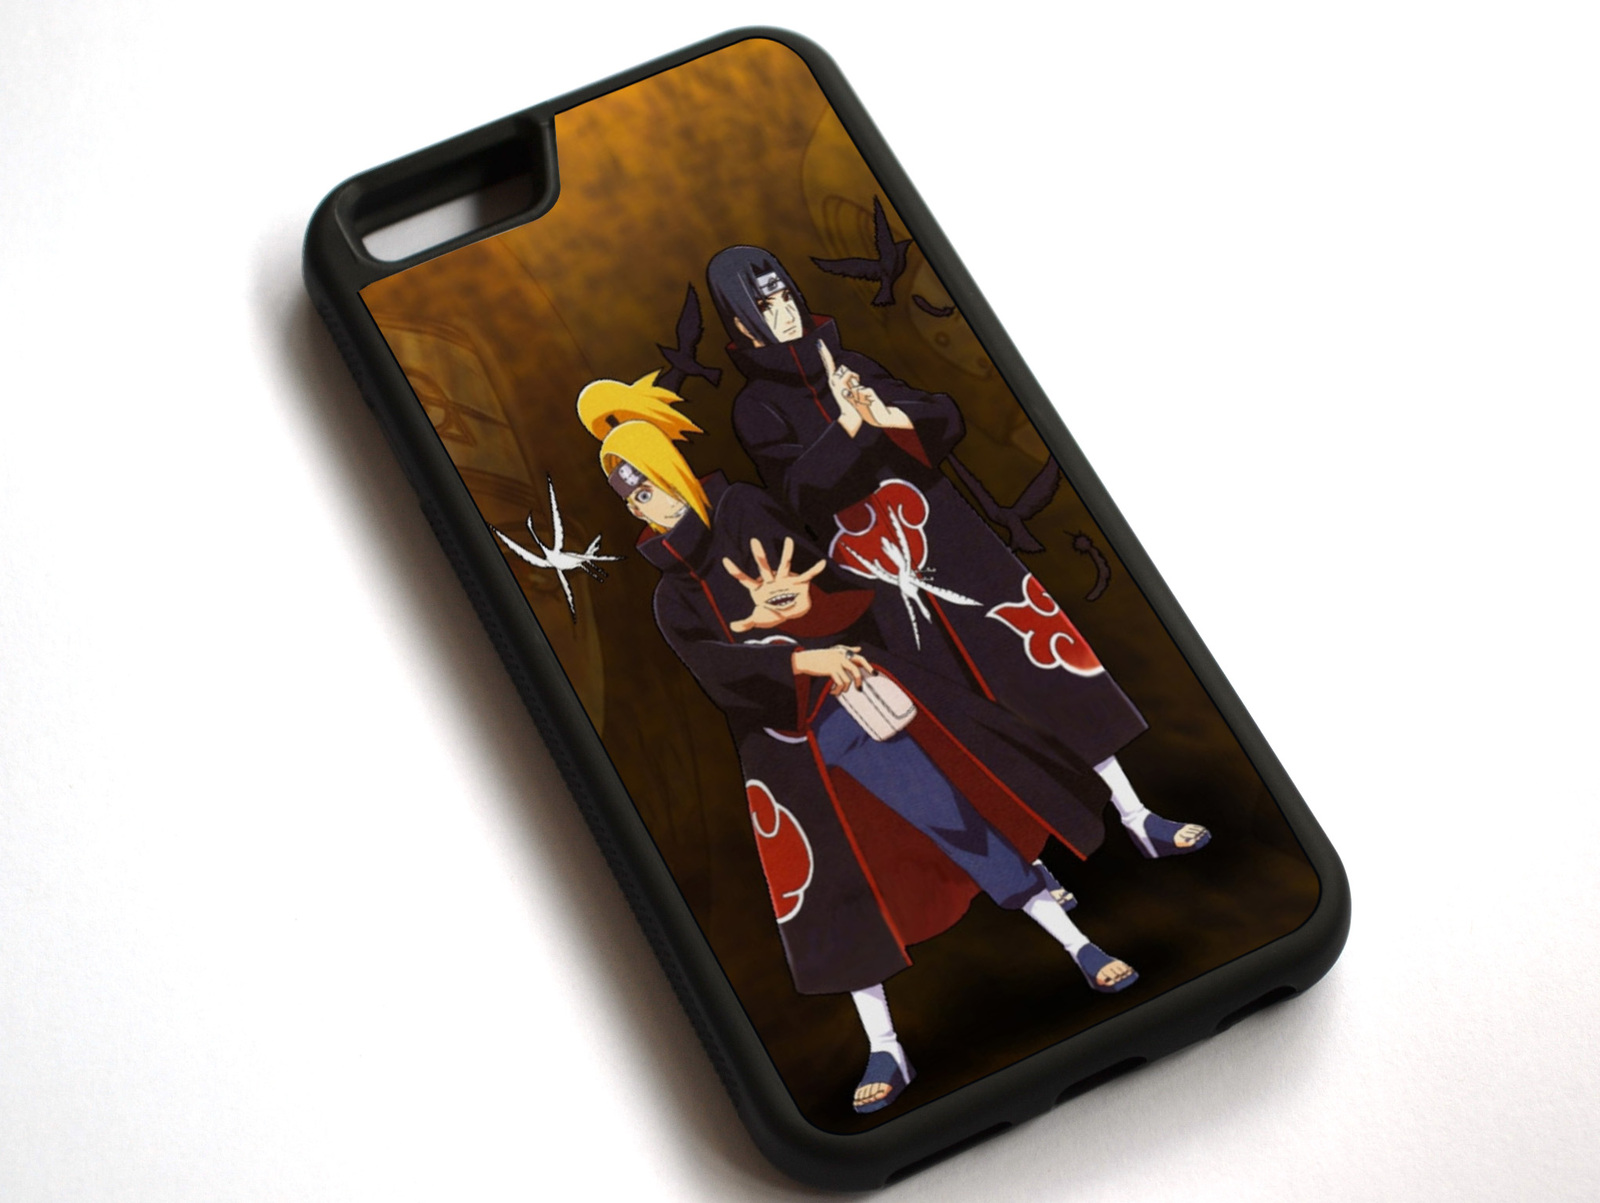 Naruto Itachi And Deidara Case Cover For Apple iphone 6 \/ 6 Plus \/ 6S Cases, Covers \u0026 Skins